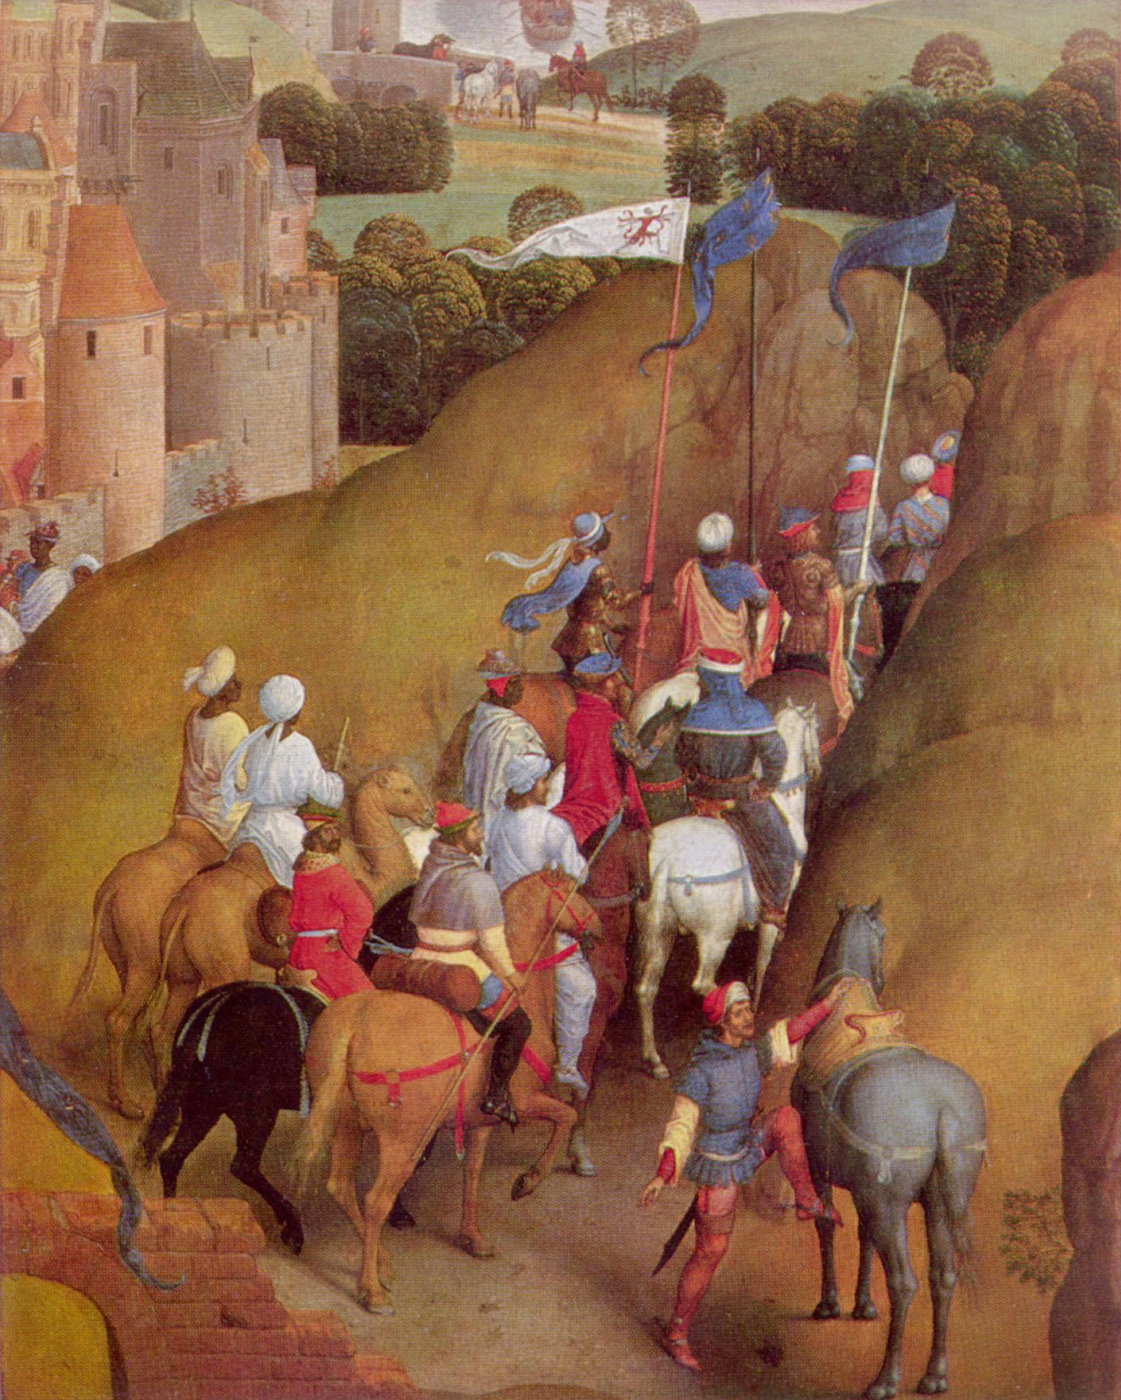 Hans Memling. Advent and Triumph of Christ or the Seven joys of Mary. Fragment